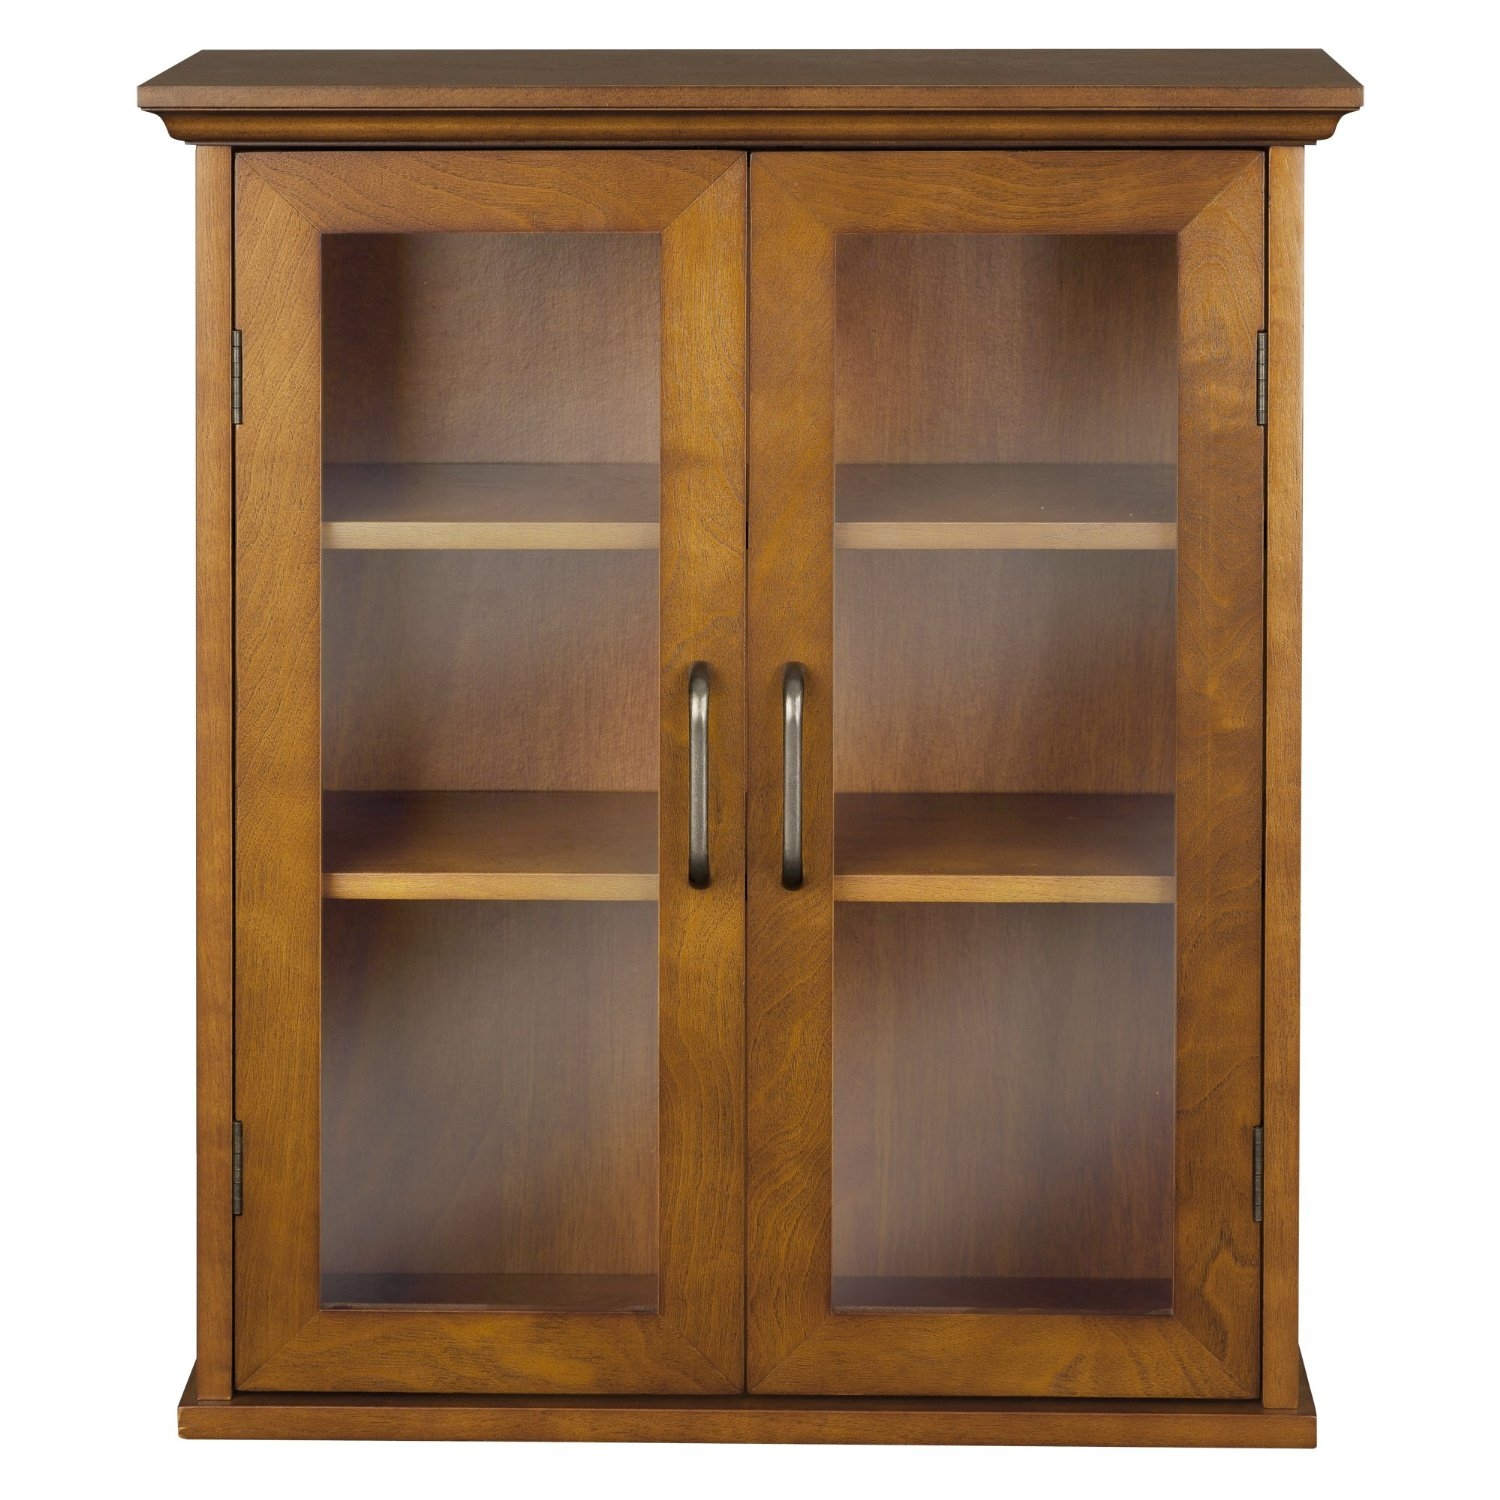 Oak Finish Bathroom Wall Cabinet with Glass 2-Doors & Shelves ...